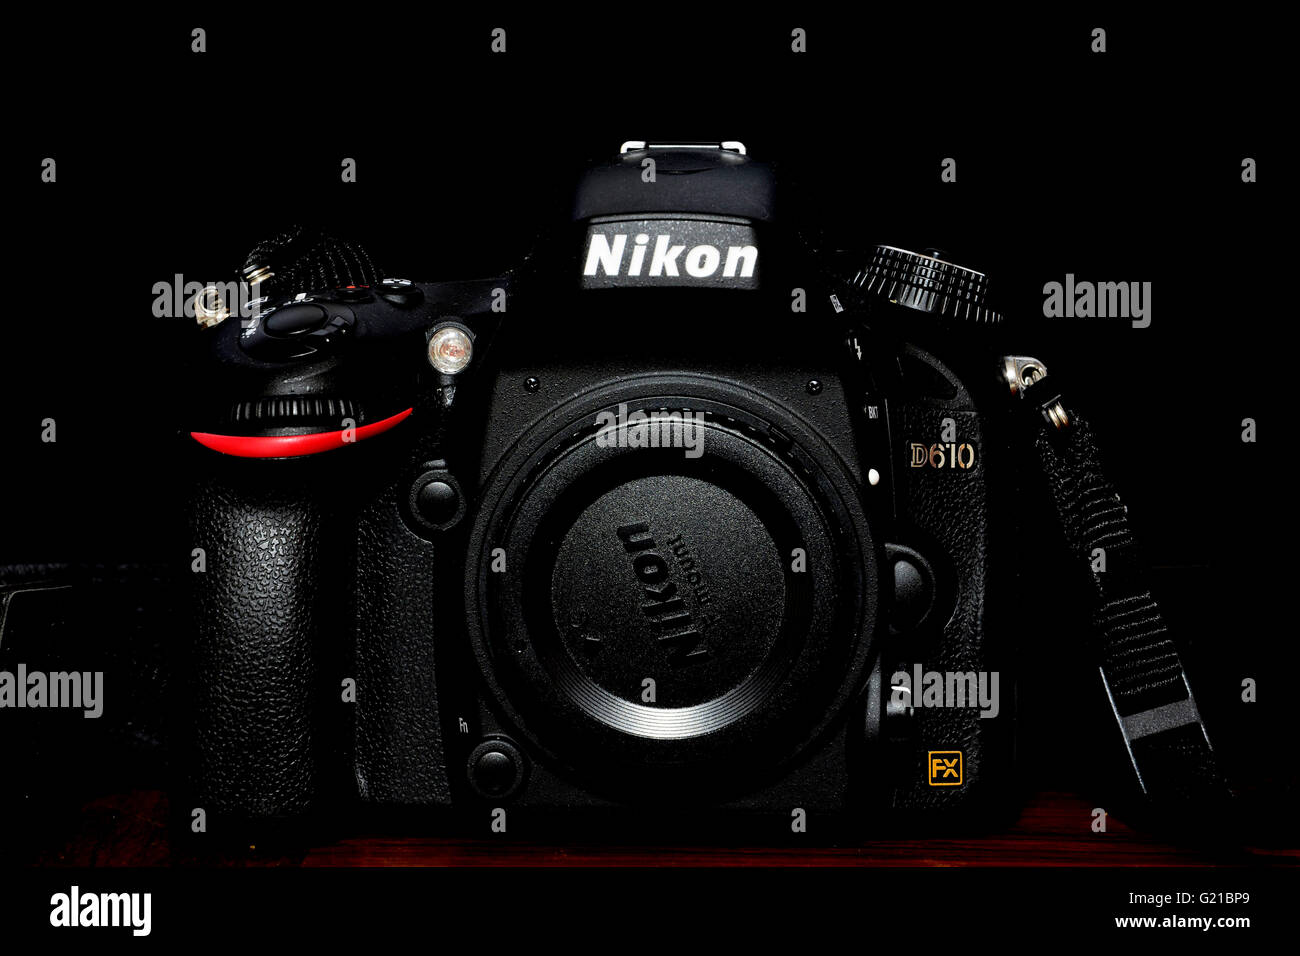 Nikon Fx Camera Stock Photos & Nikon Fx Camera Stock Images - Alamy